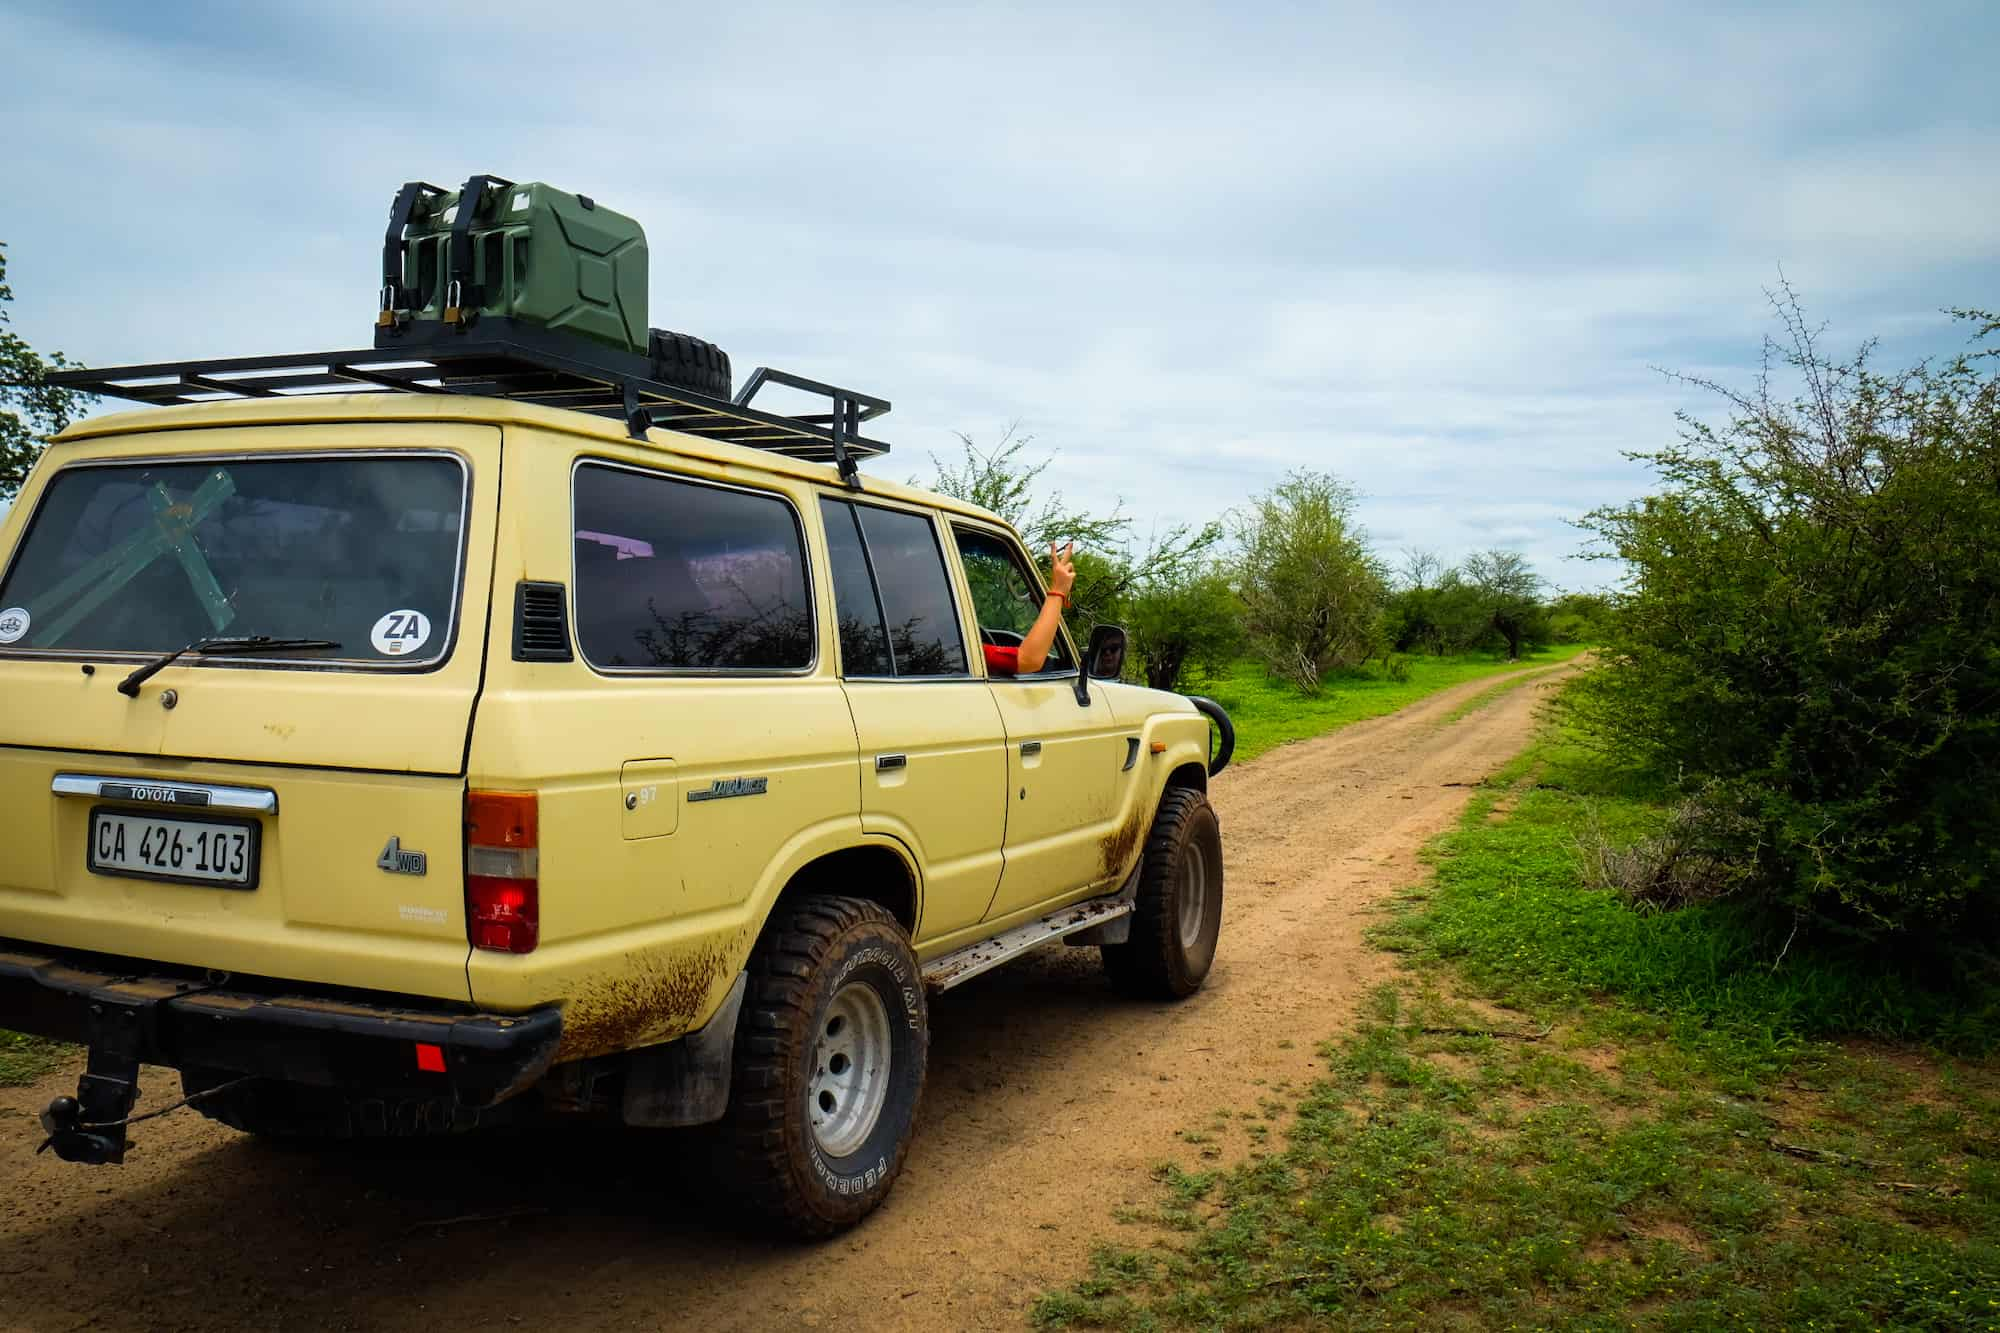 Overland Vehicle Equipment And Gear List For Traveling Africa